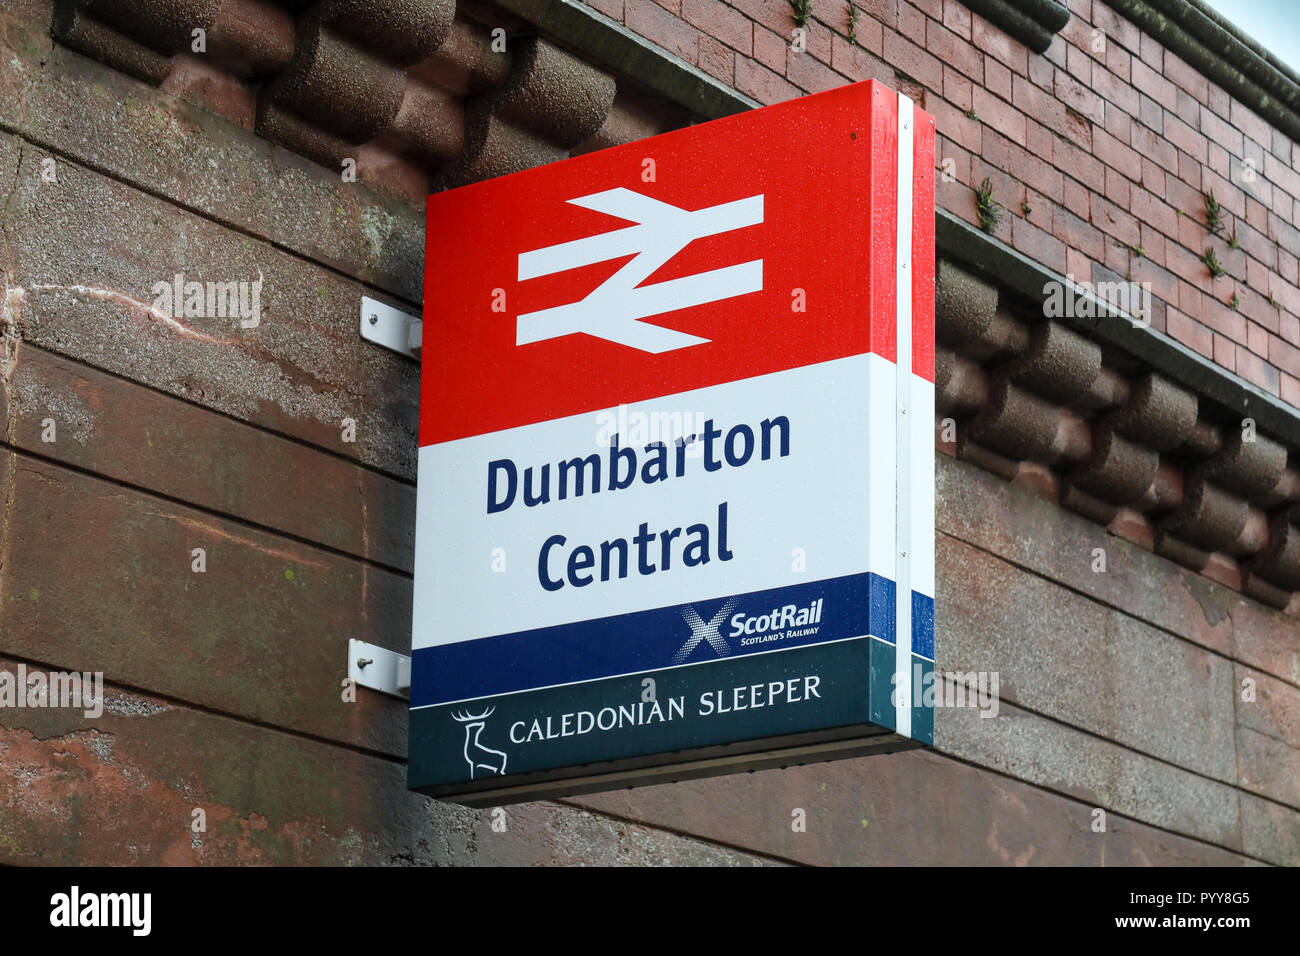 Dumbarton Central train station in West Dunbartonshire, Scotland - Stock Image